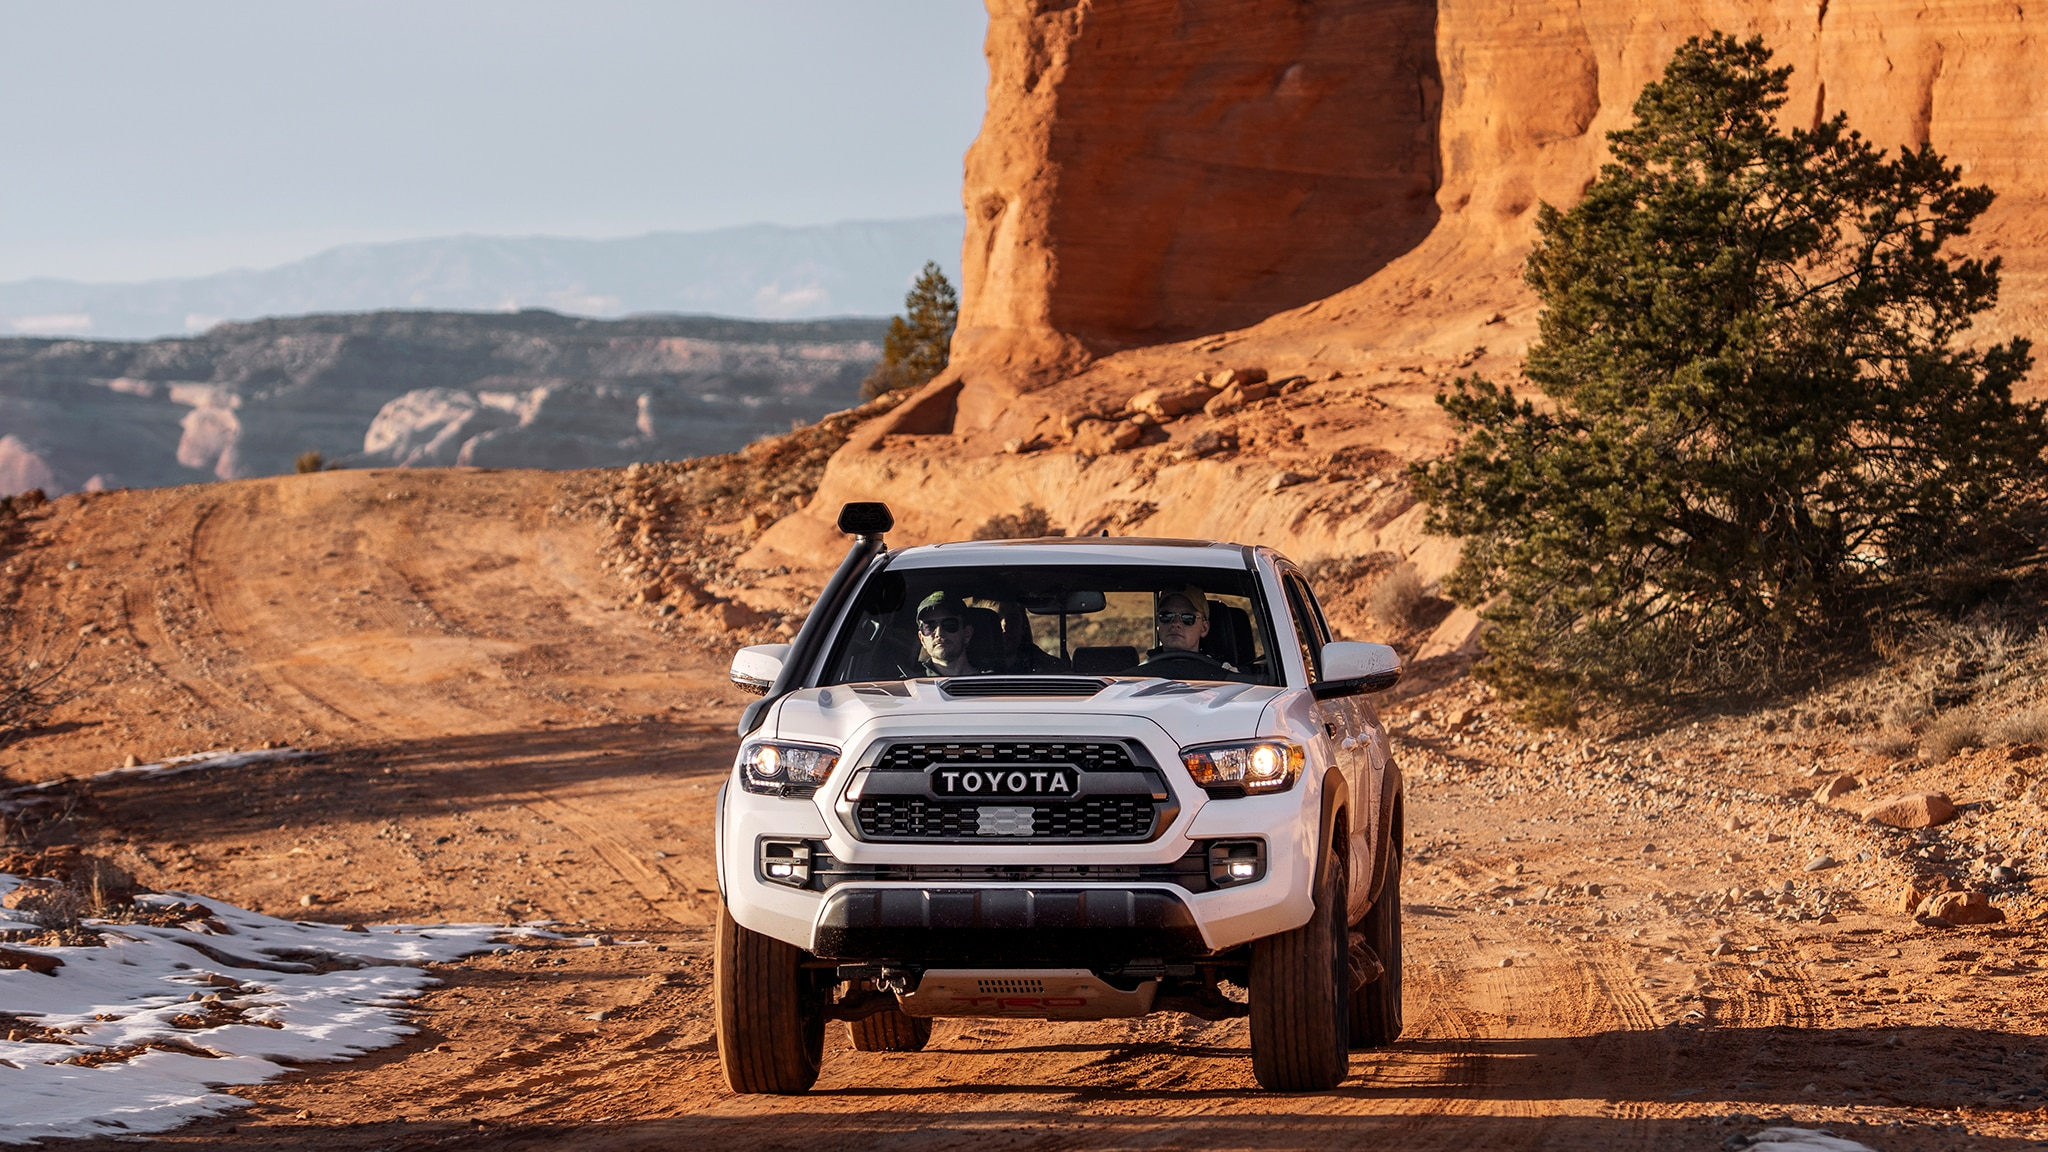 Toyota S Tacoma Trd Pro Conquers The Trail That Killed A Truck